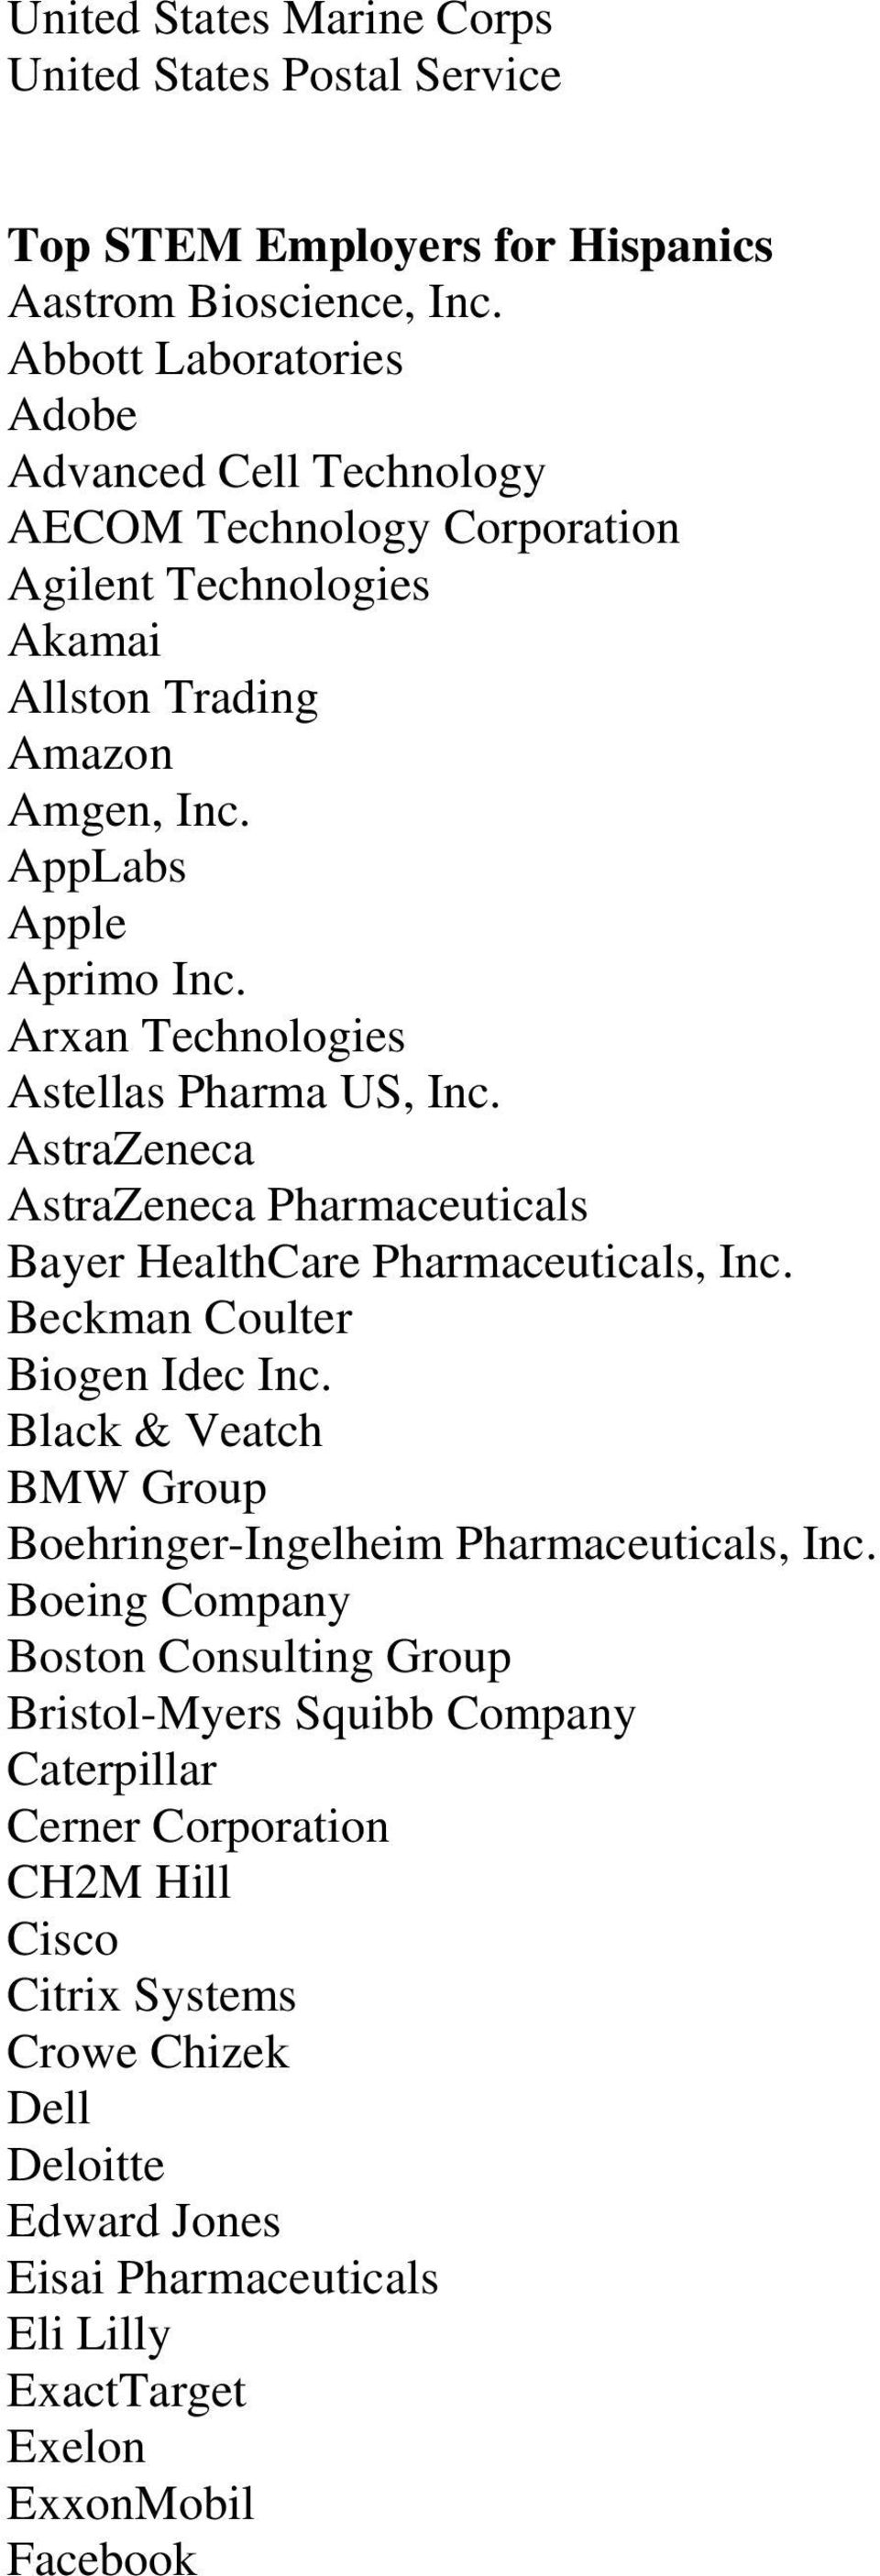 Arxan Technologies Astellas Pharma US, Inc. AstraZeneca AstraZeneca Pharmaceuticals Bayer HealthCare Pharmaceuticals, Inc. Beckman Coulter Biogen Idec Inc.